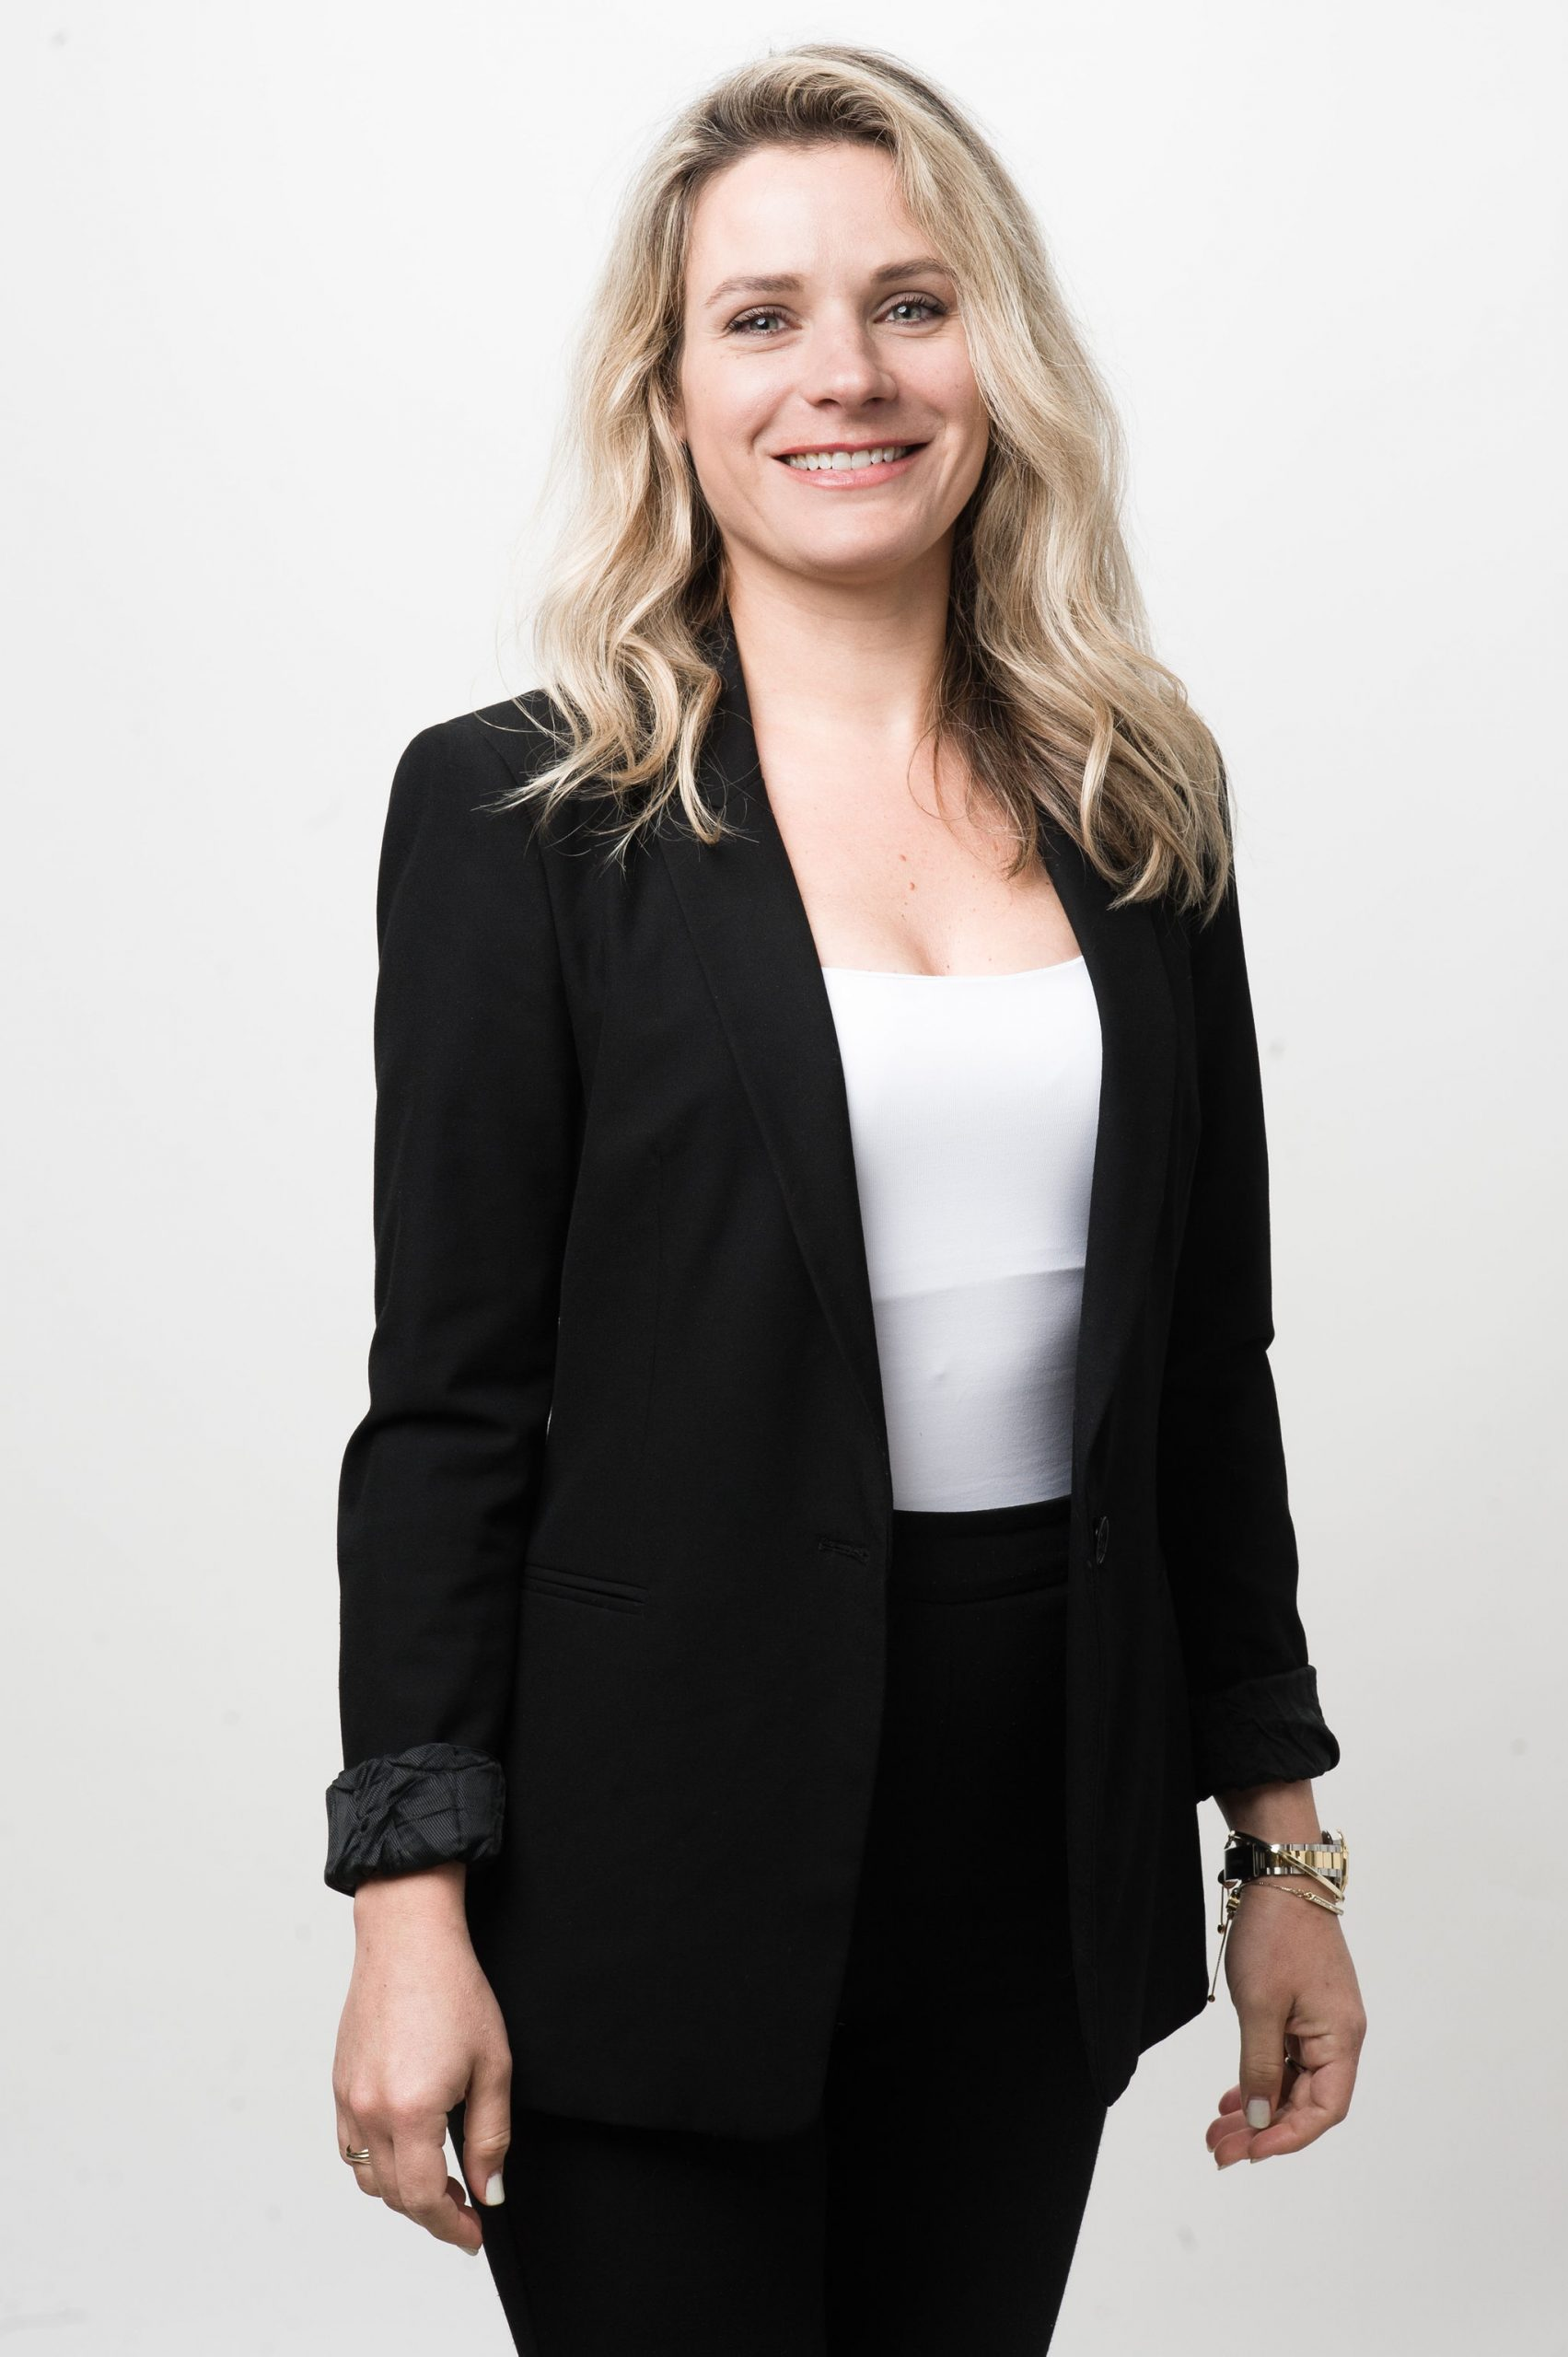 Mathilde Lecomte - Manager of Services Sales Support